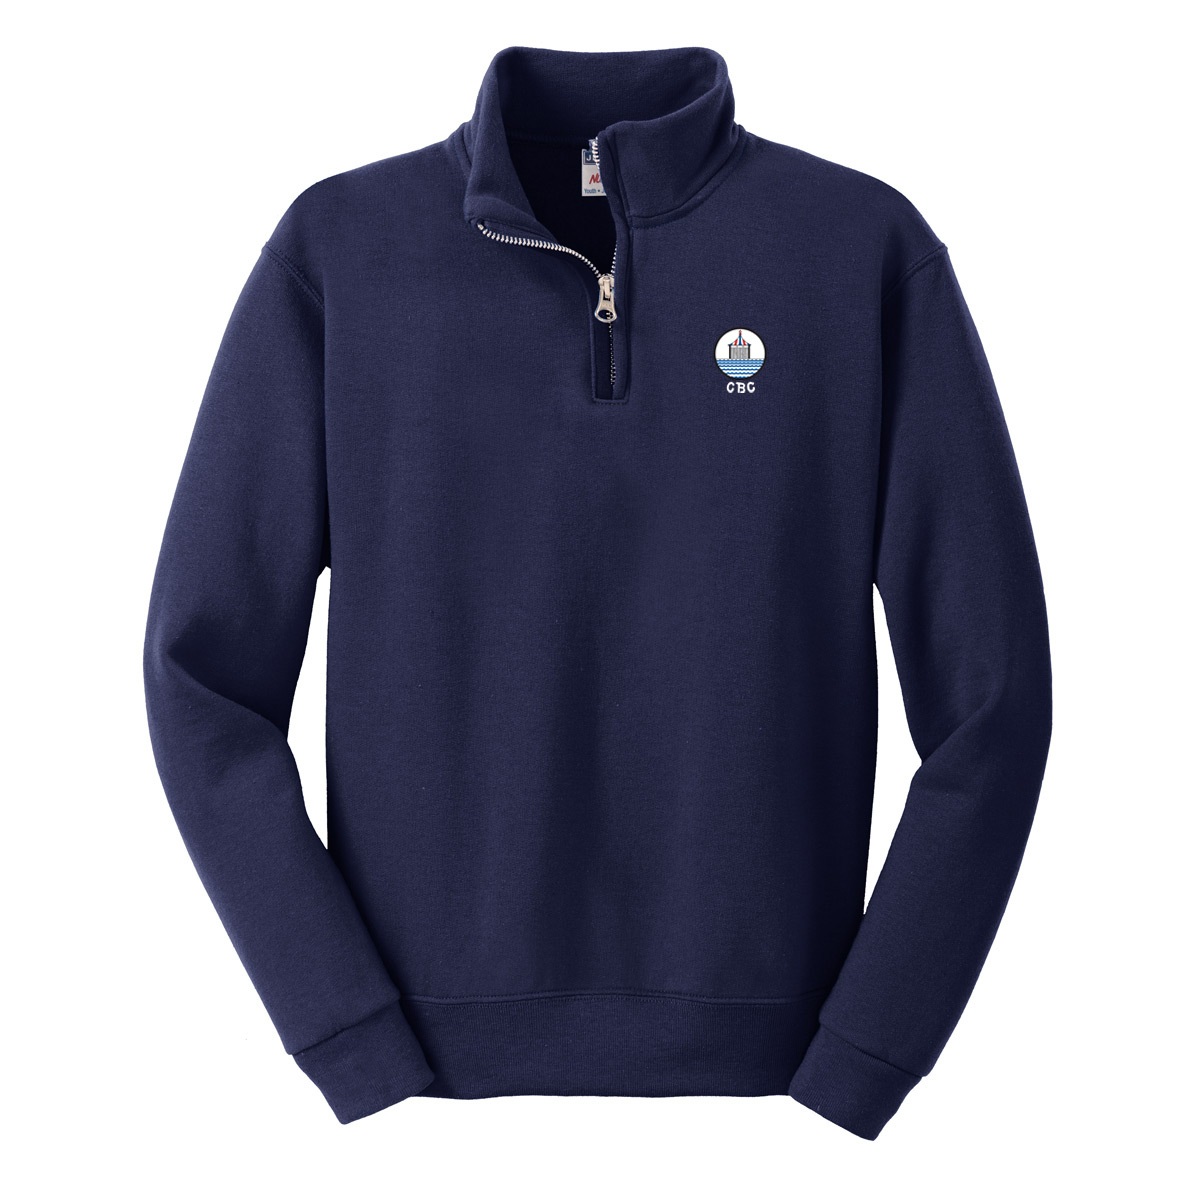 CBC - K's 1/4 ZIP SWEATSHIRT